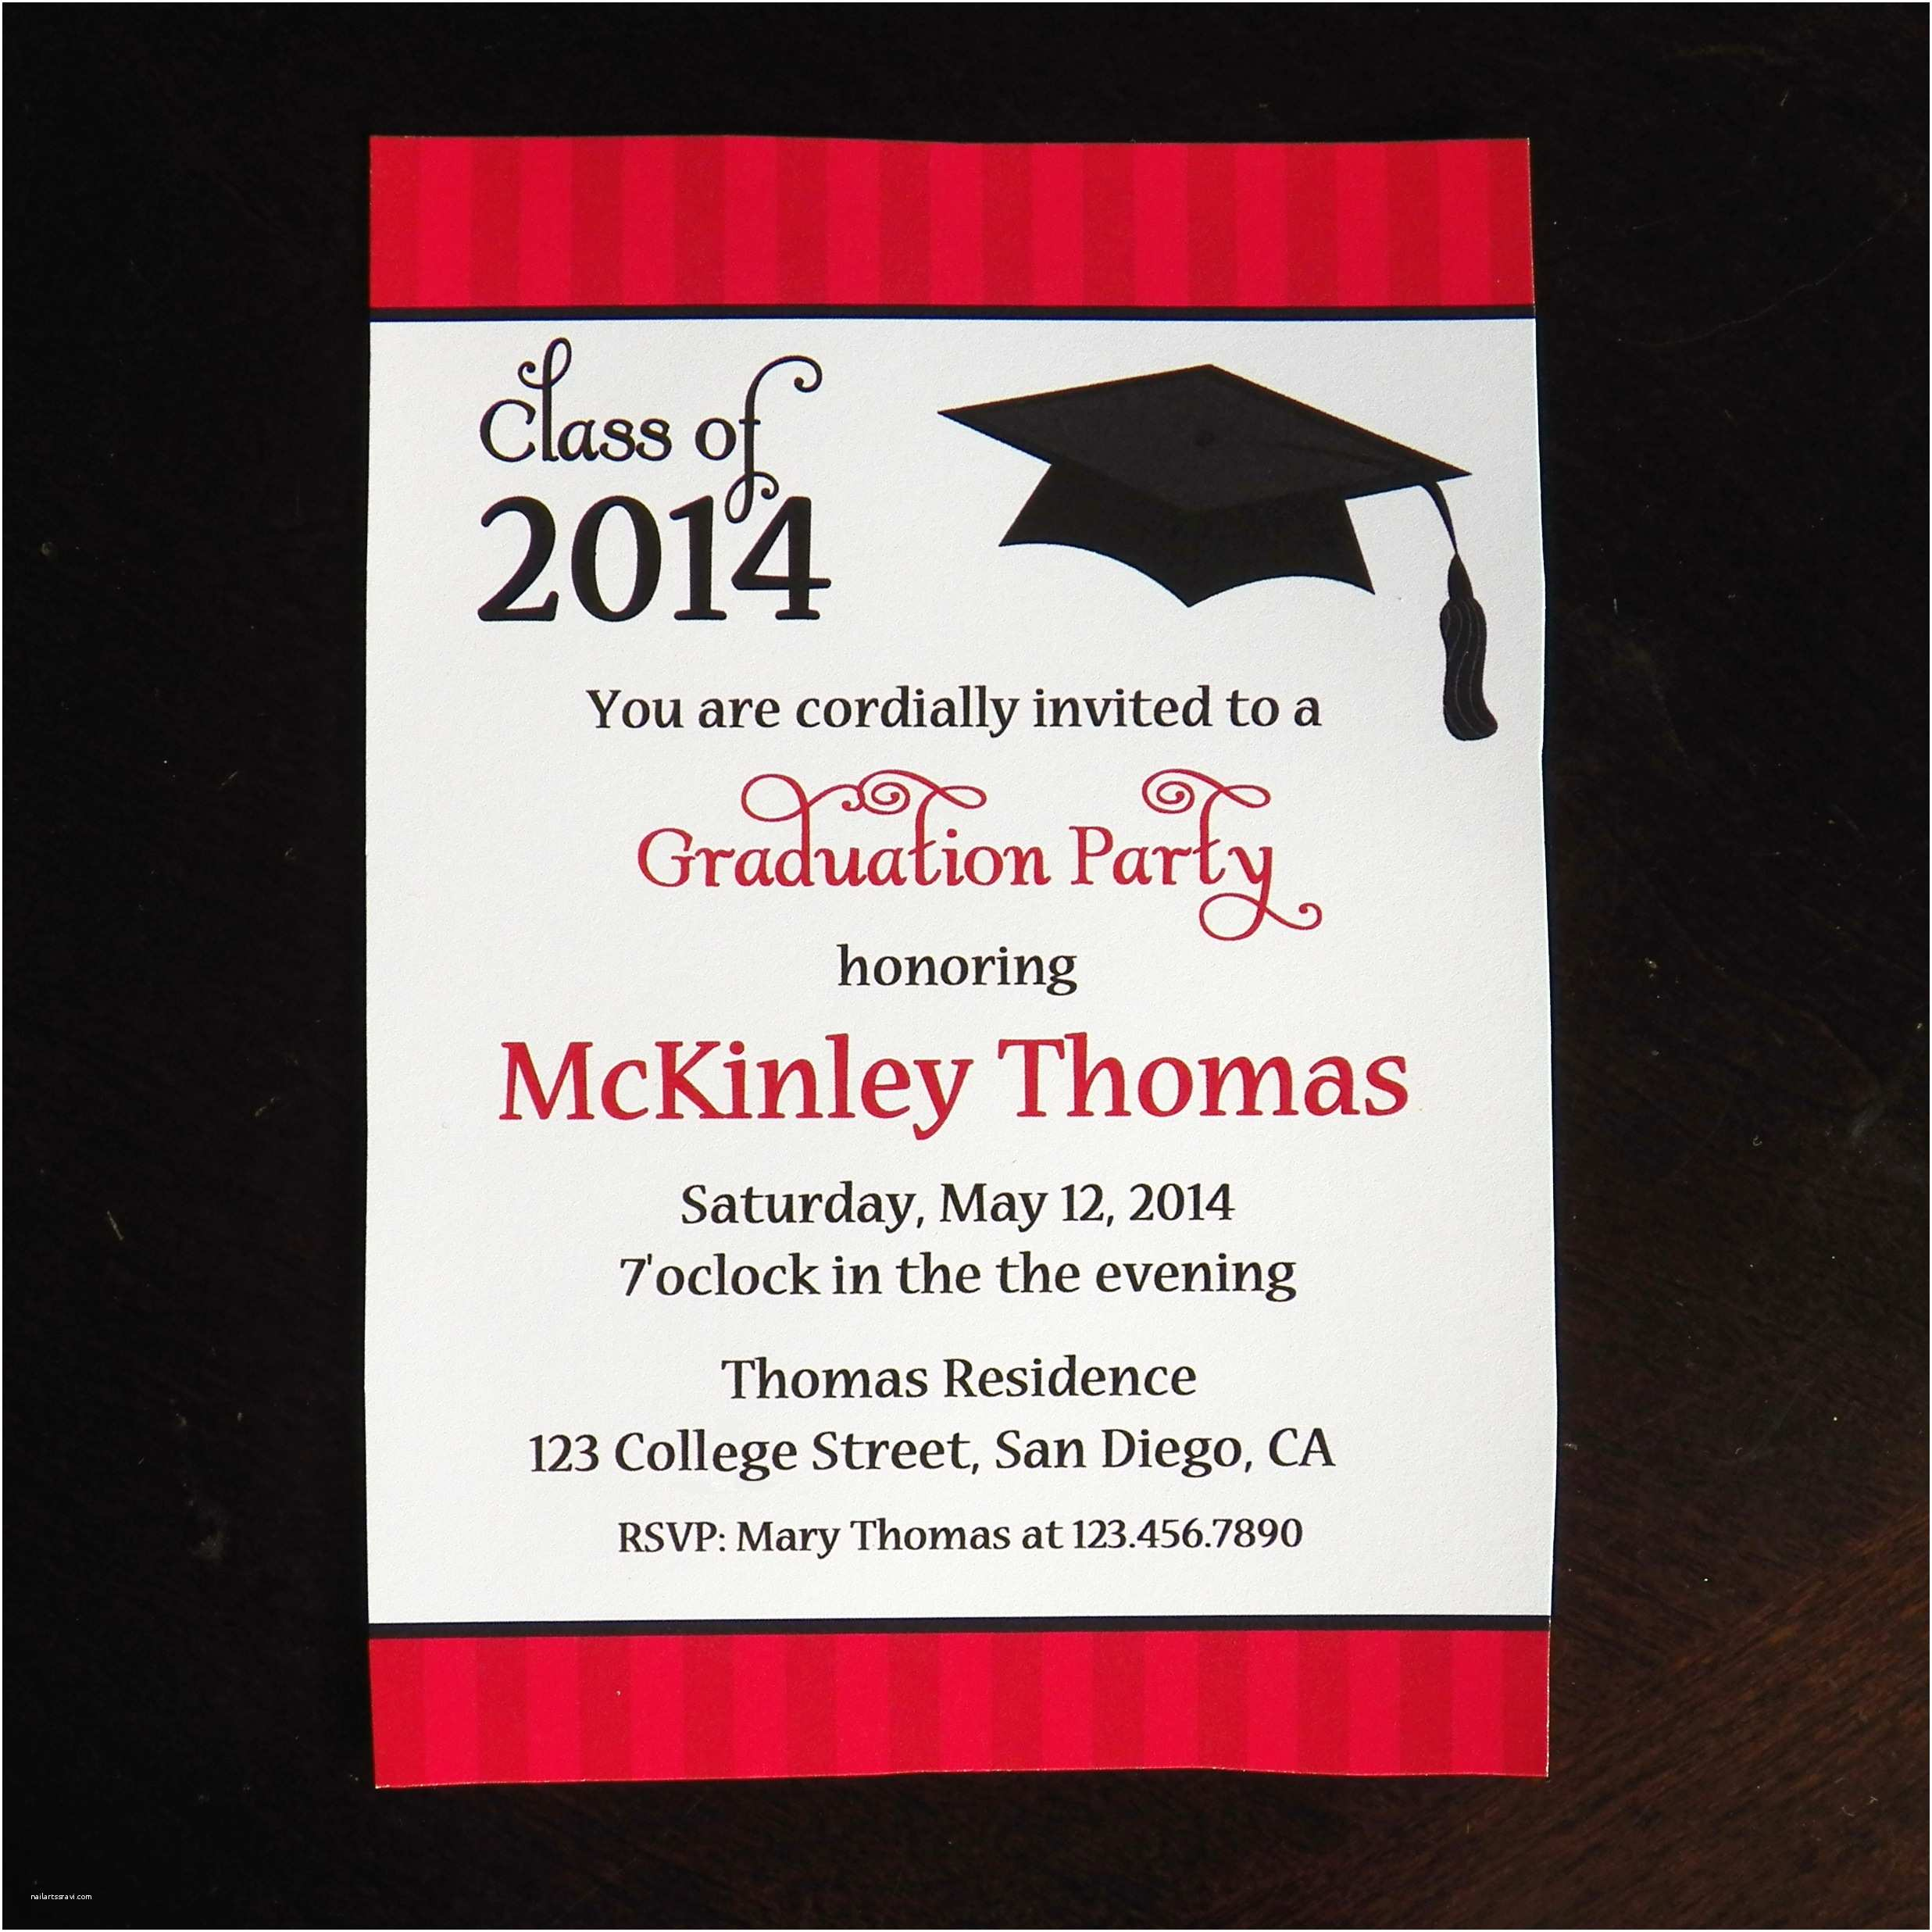 Grad Party Invites Graduation Party Hats F to Mckinley that Party Chick